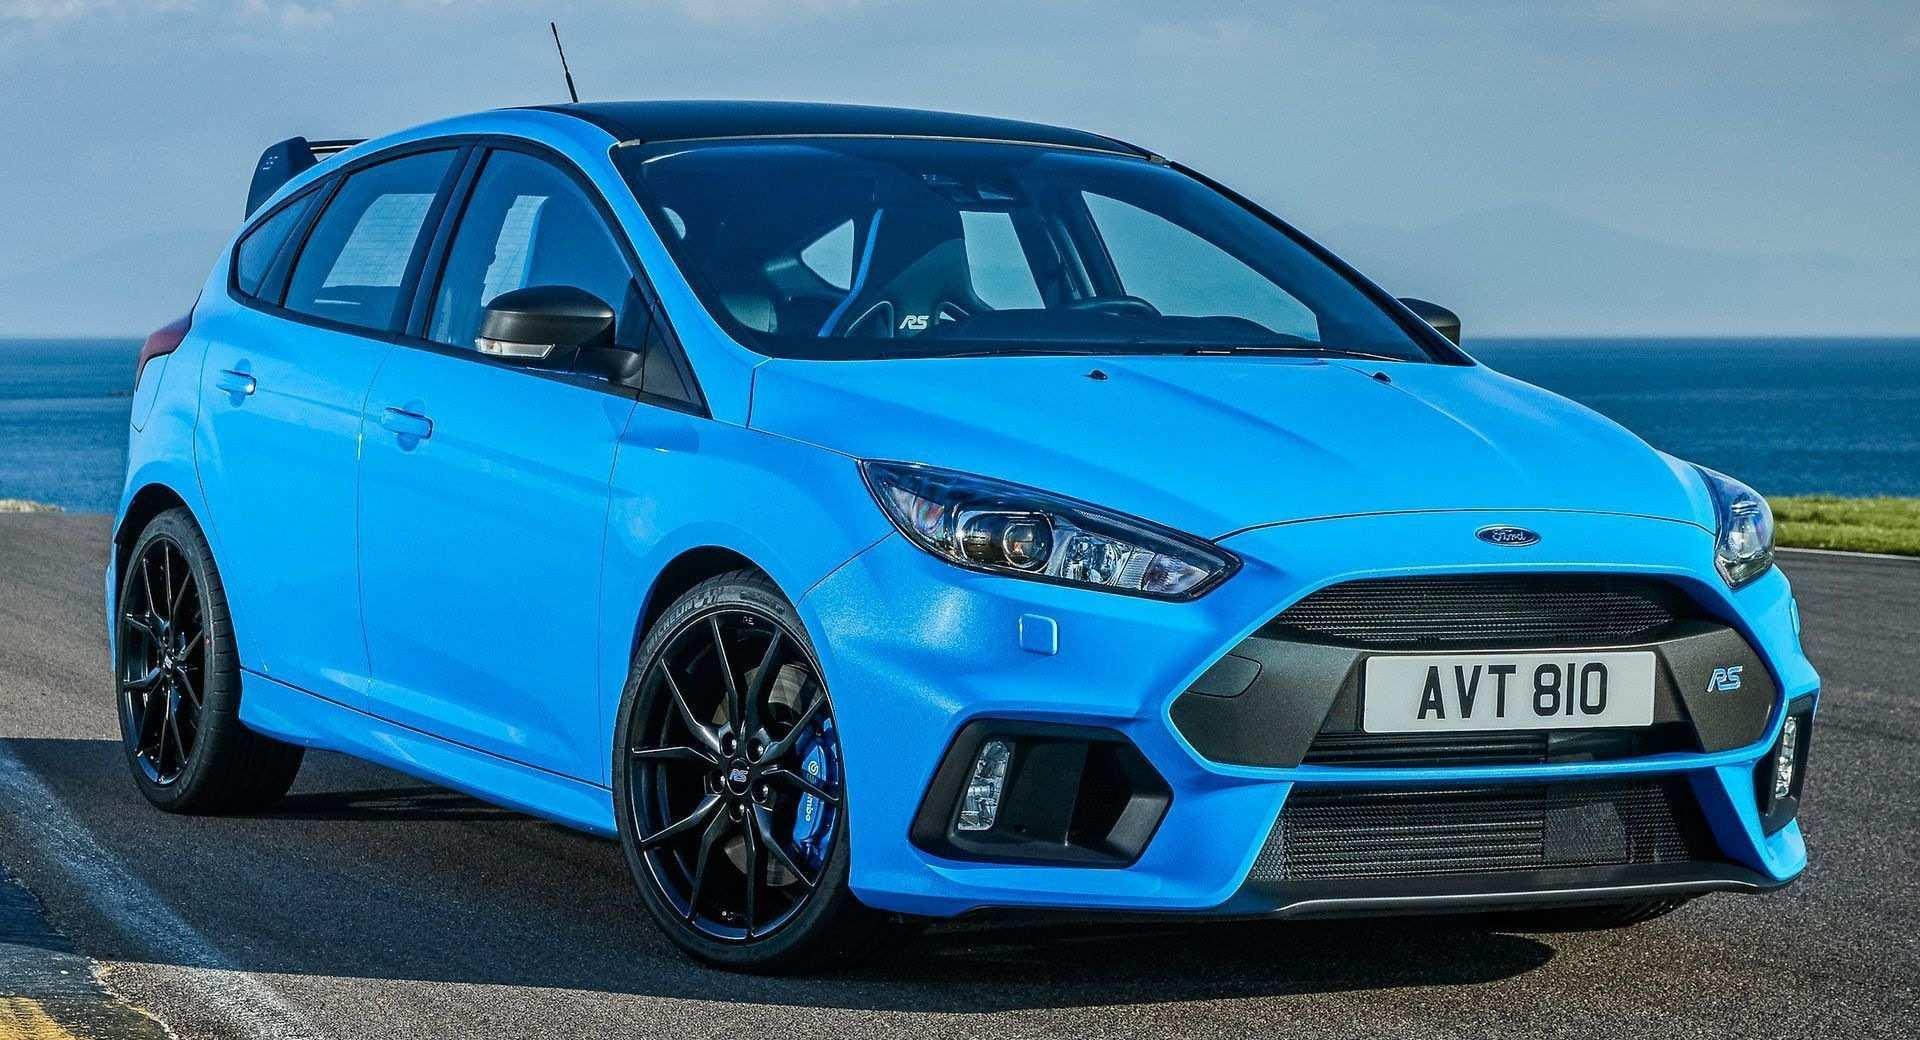 73 All New 2020 Ford Fiesta St Rs Model